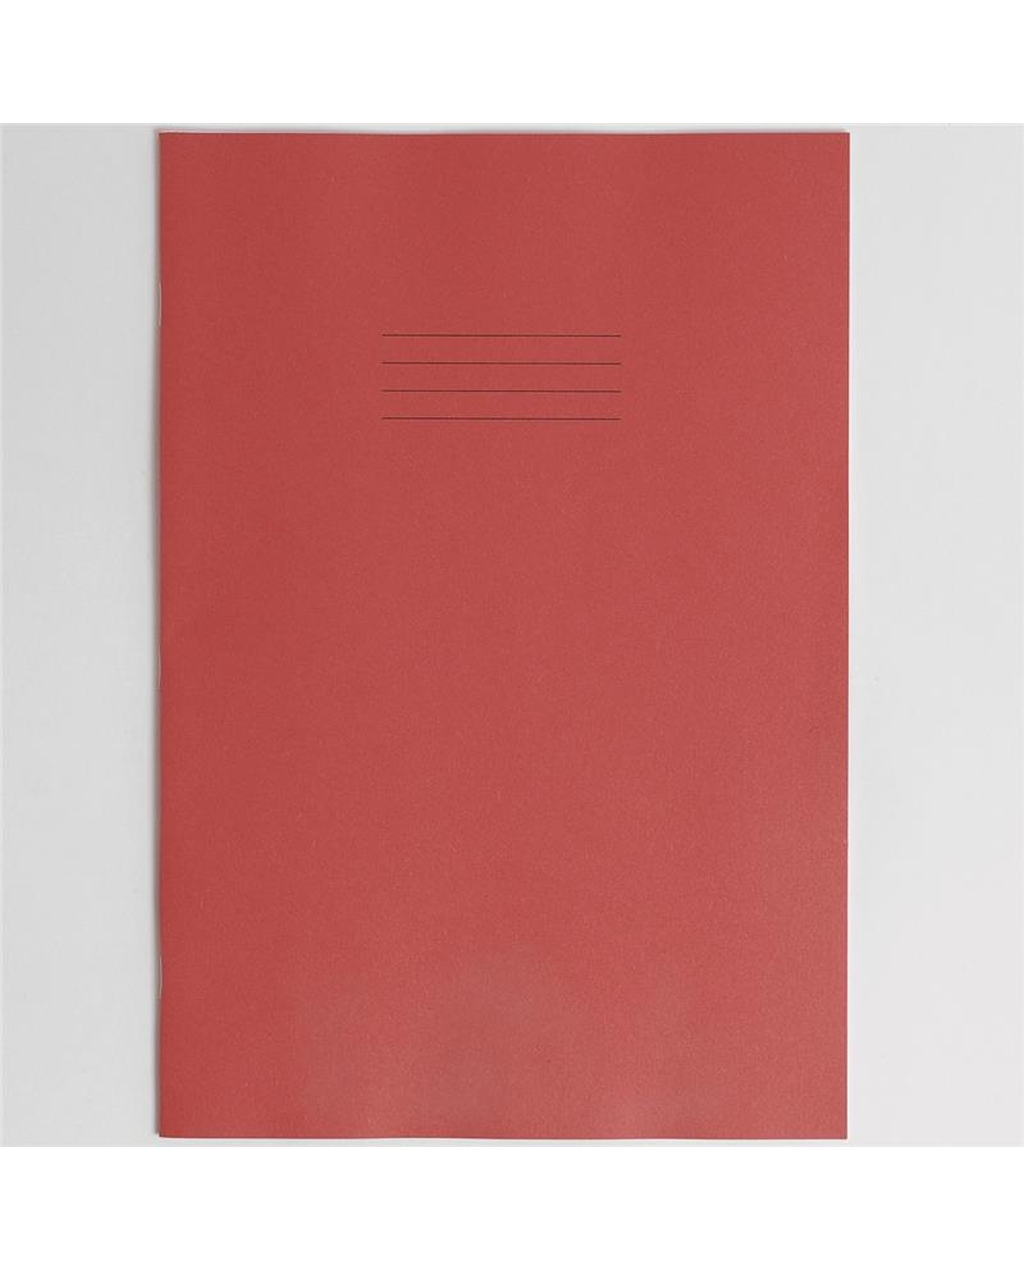 Exercise Book A4+ (330 x 250mm) Red Cover Plain - No Ruling 80 Pages